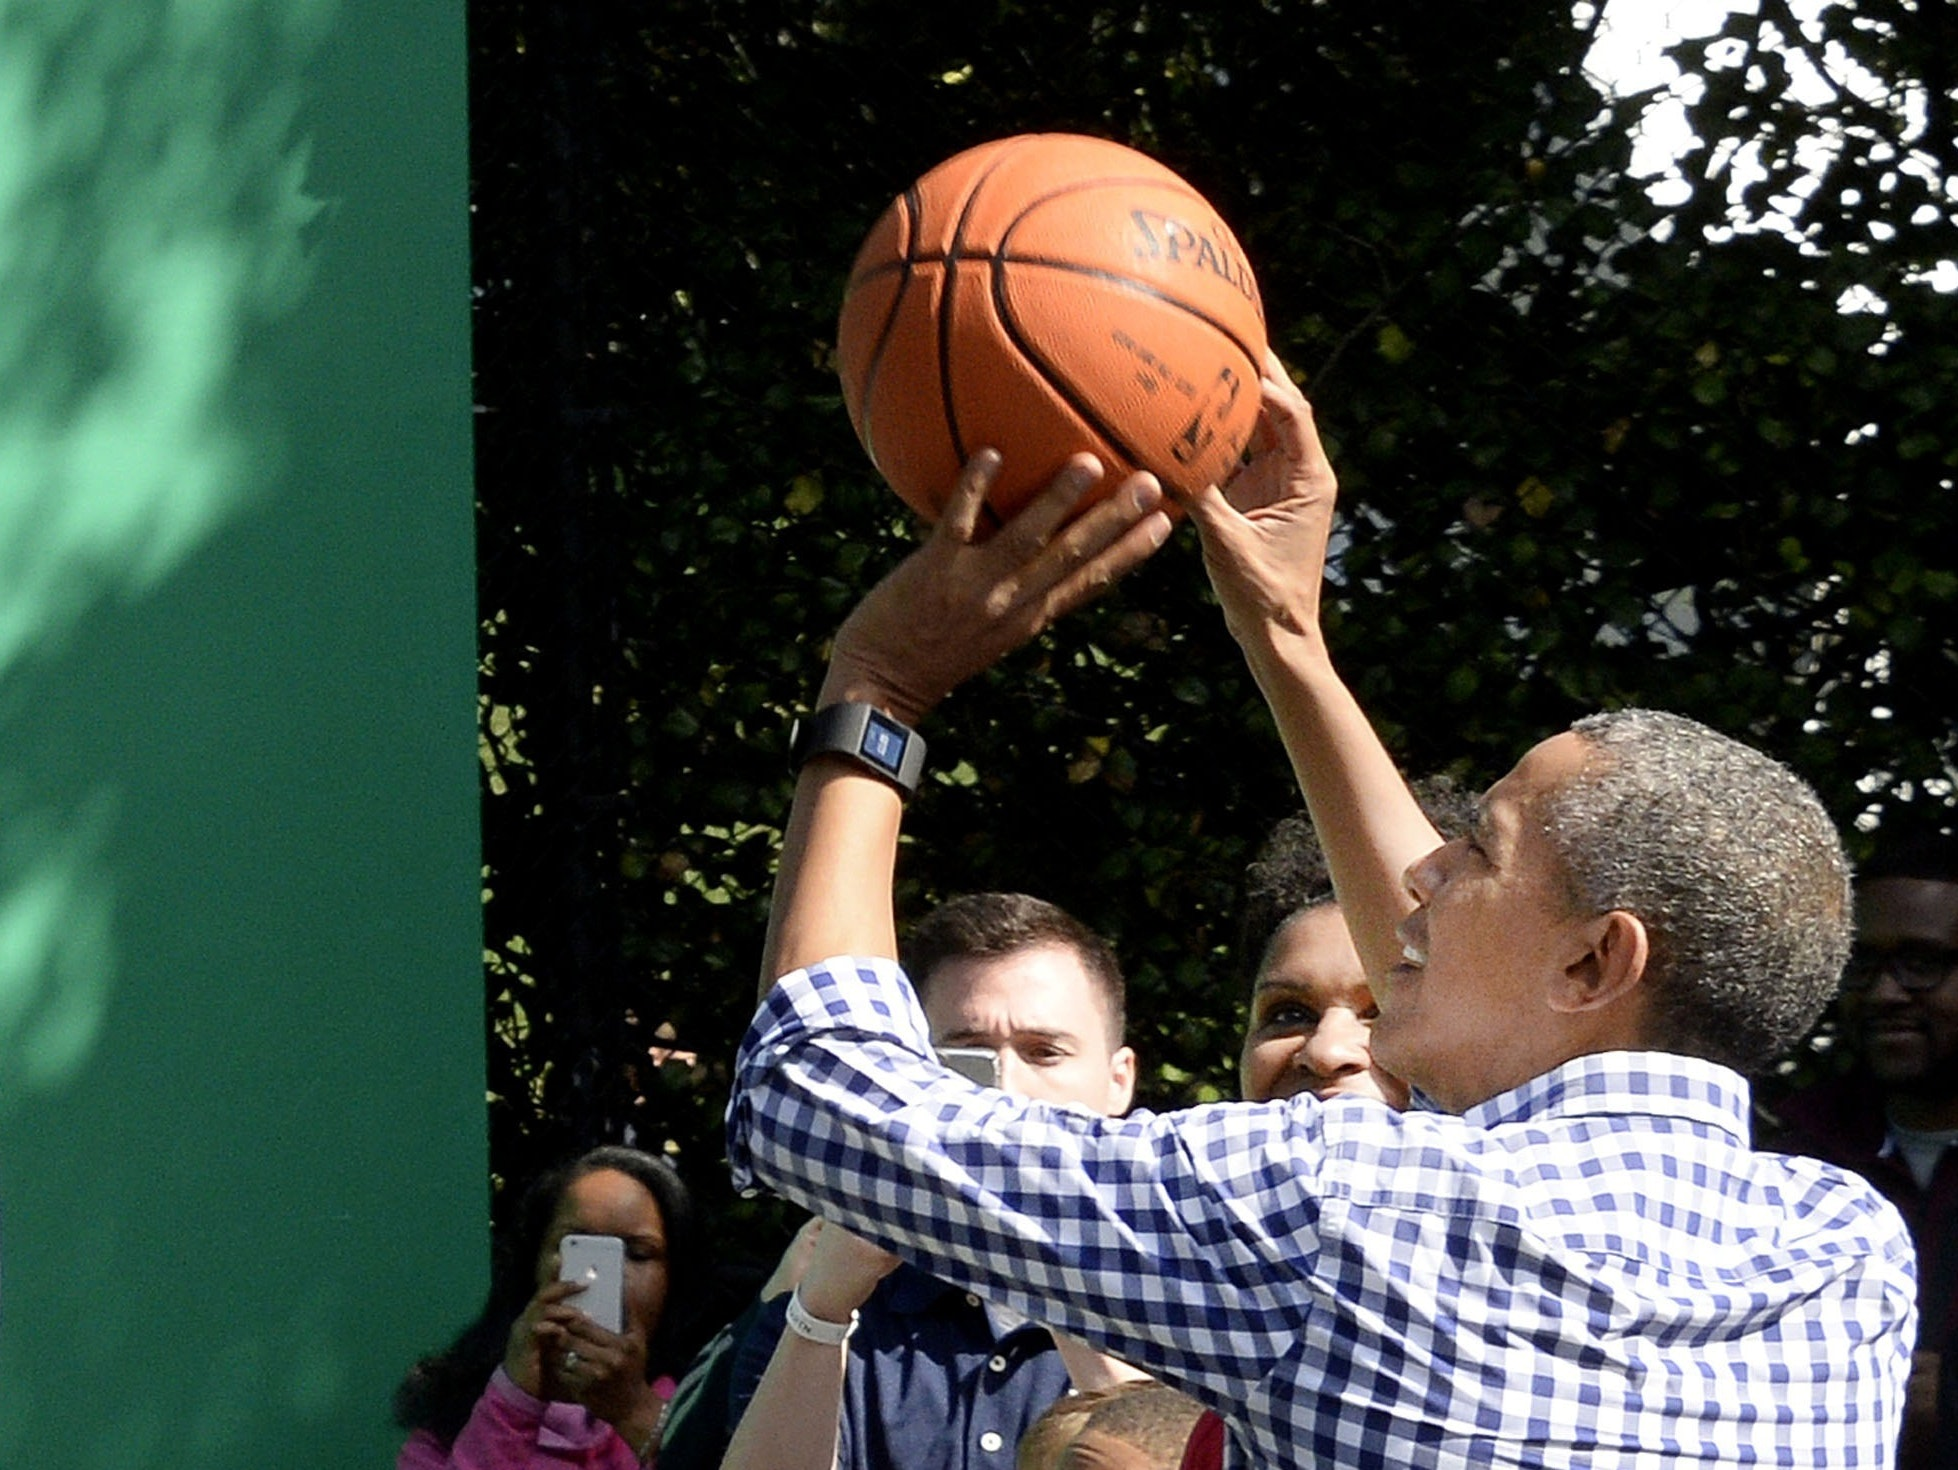 Why Obama's 'One-on-None' Basketball Strategy Never Fails